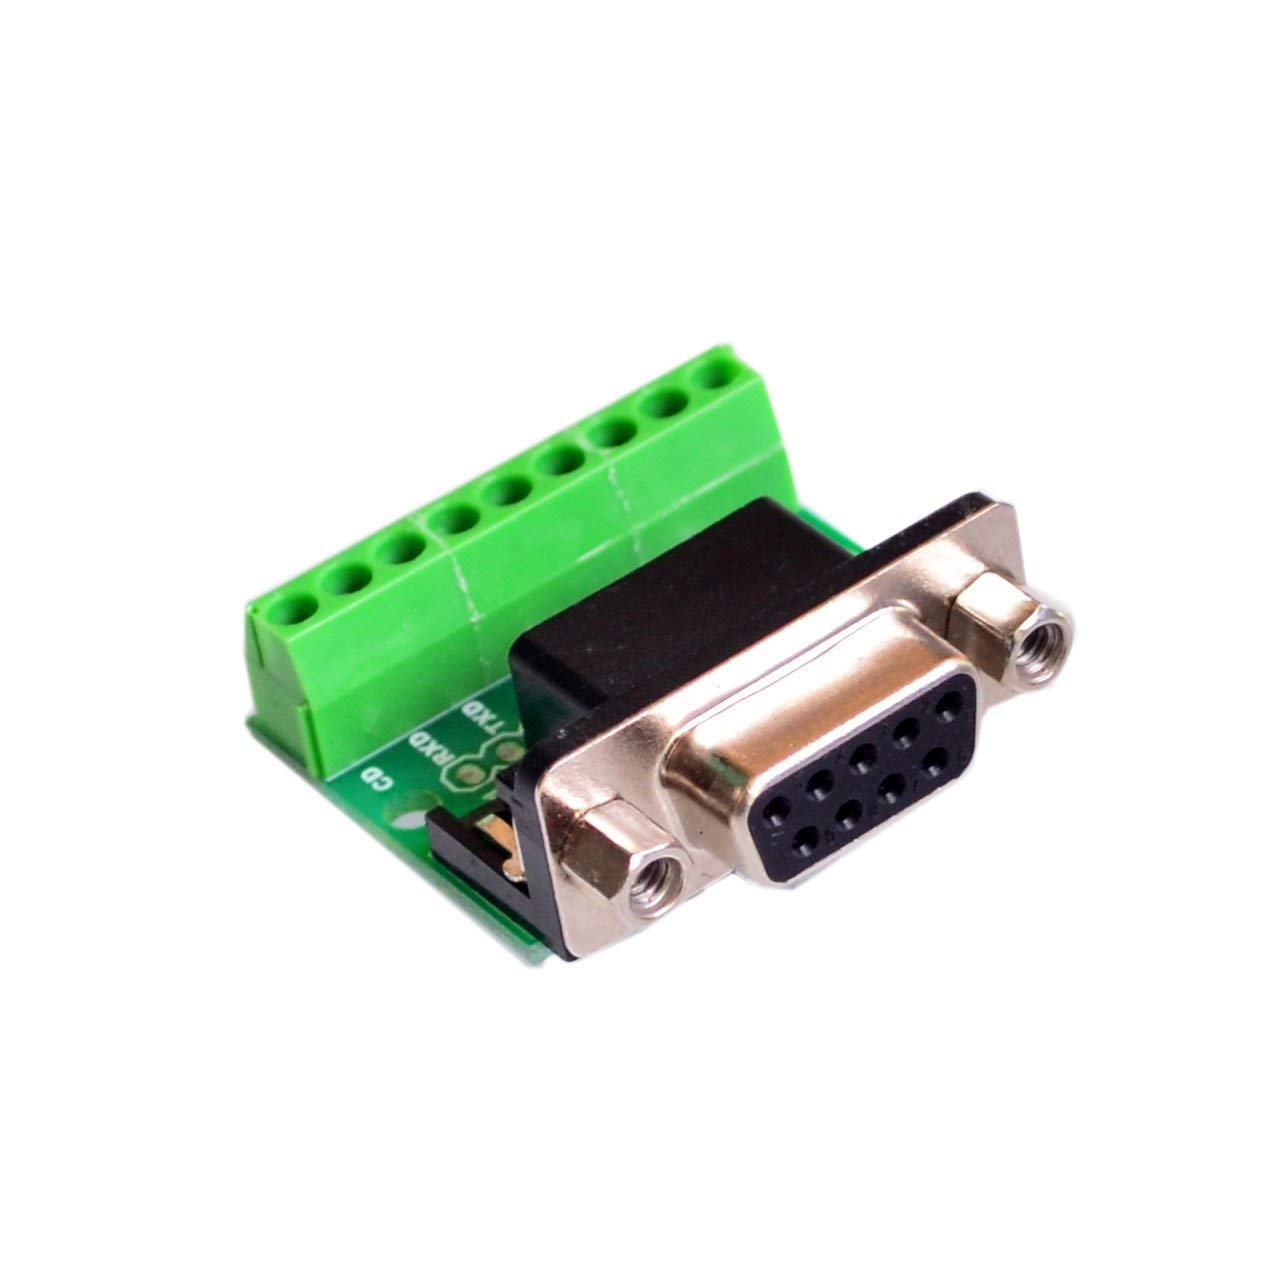 Bestol 10PCS/LOT DB9 RS232 Serial to Terminal Female Adapter Connector Breakout Board Black+Green